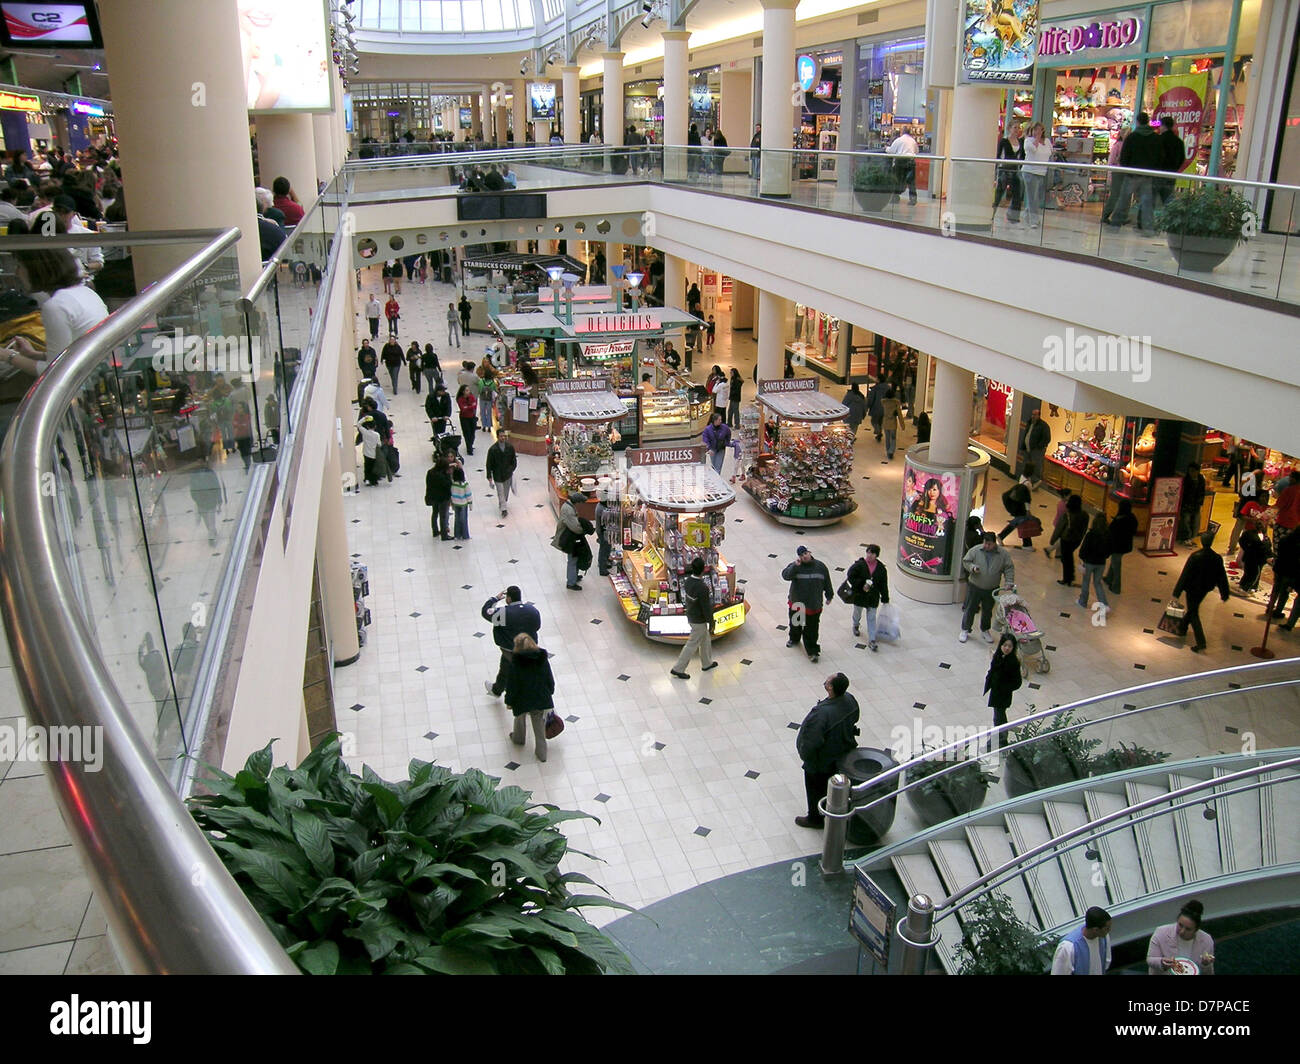 Roosevelt field mall long island garden city new york stock photo 56424830 alamy for Roosevelt field garden city ny